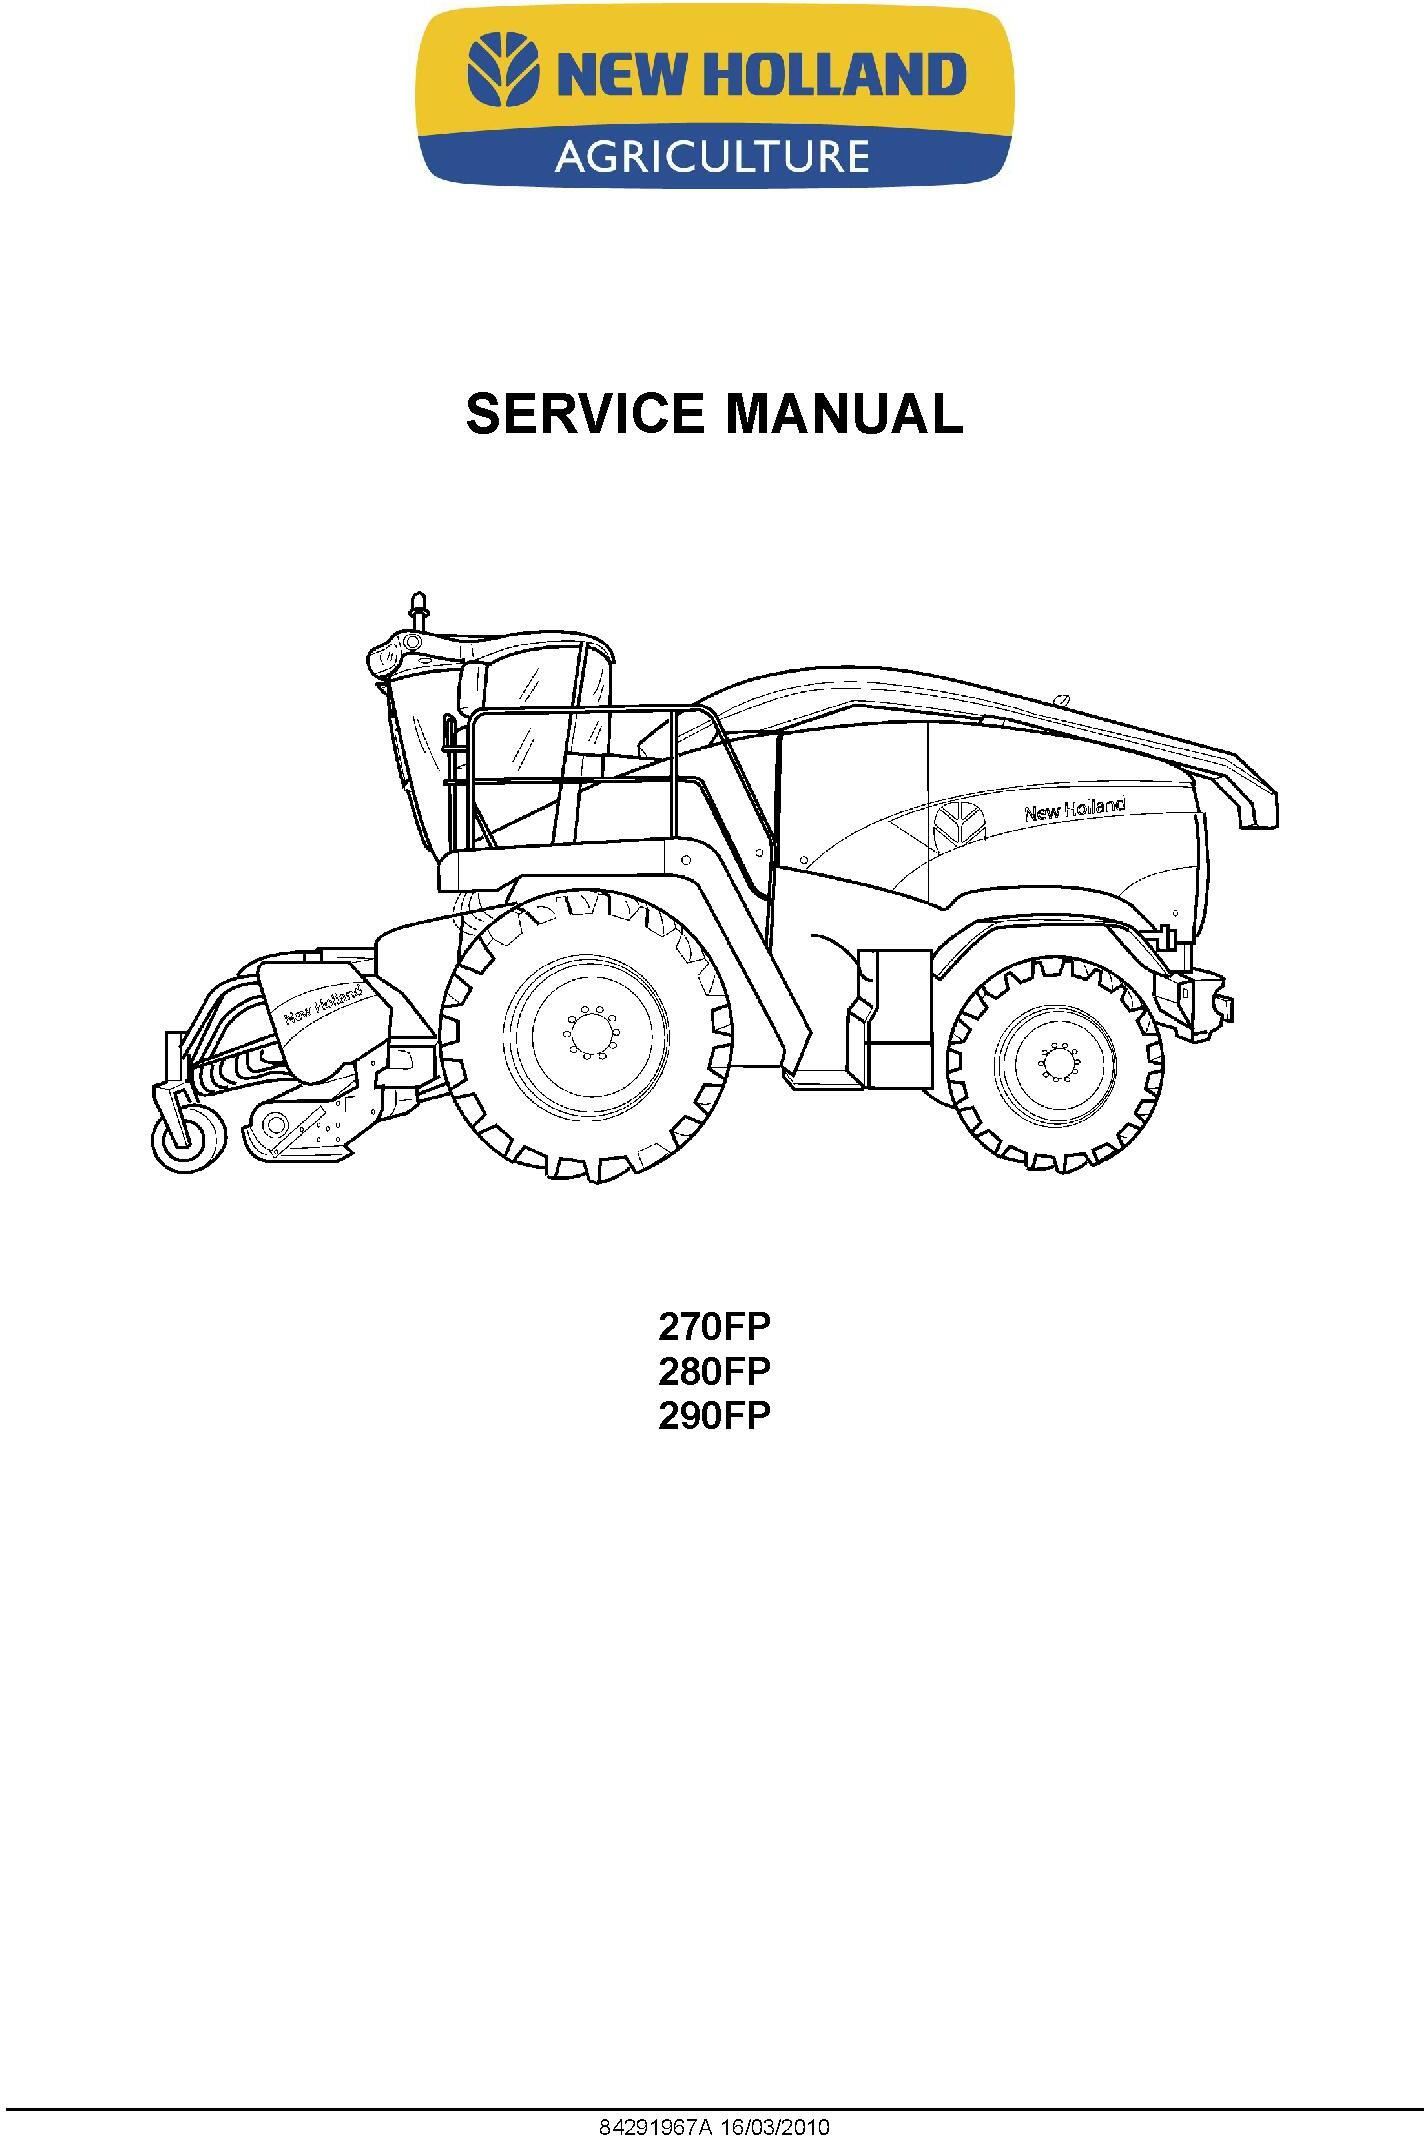 New Holland 270FP, 280FP, 290FP Self Propelled Forage Pickup Headers Service Manual - 1